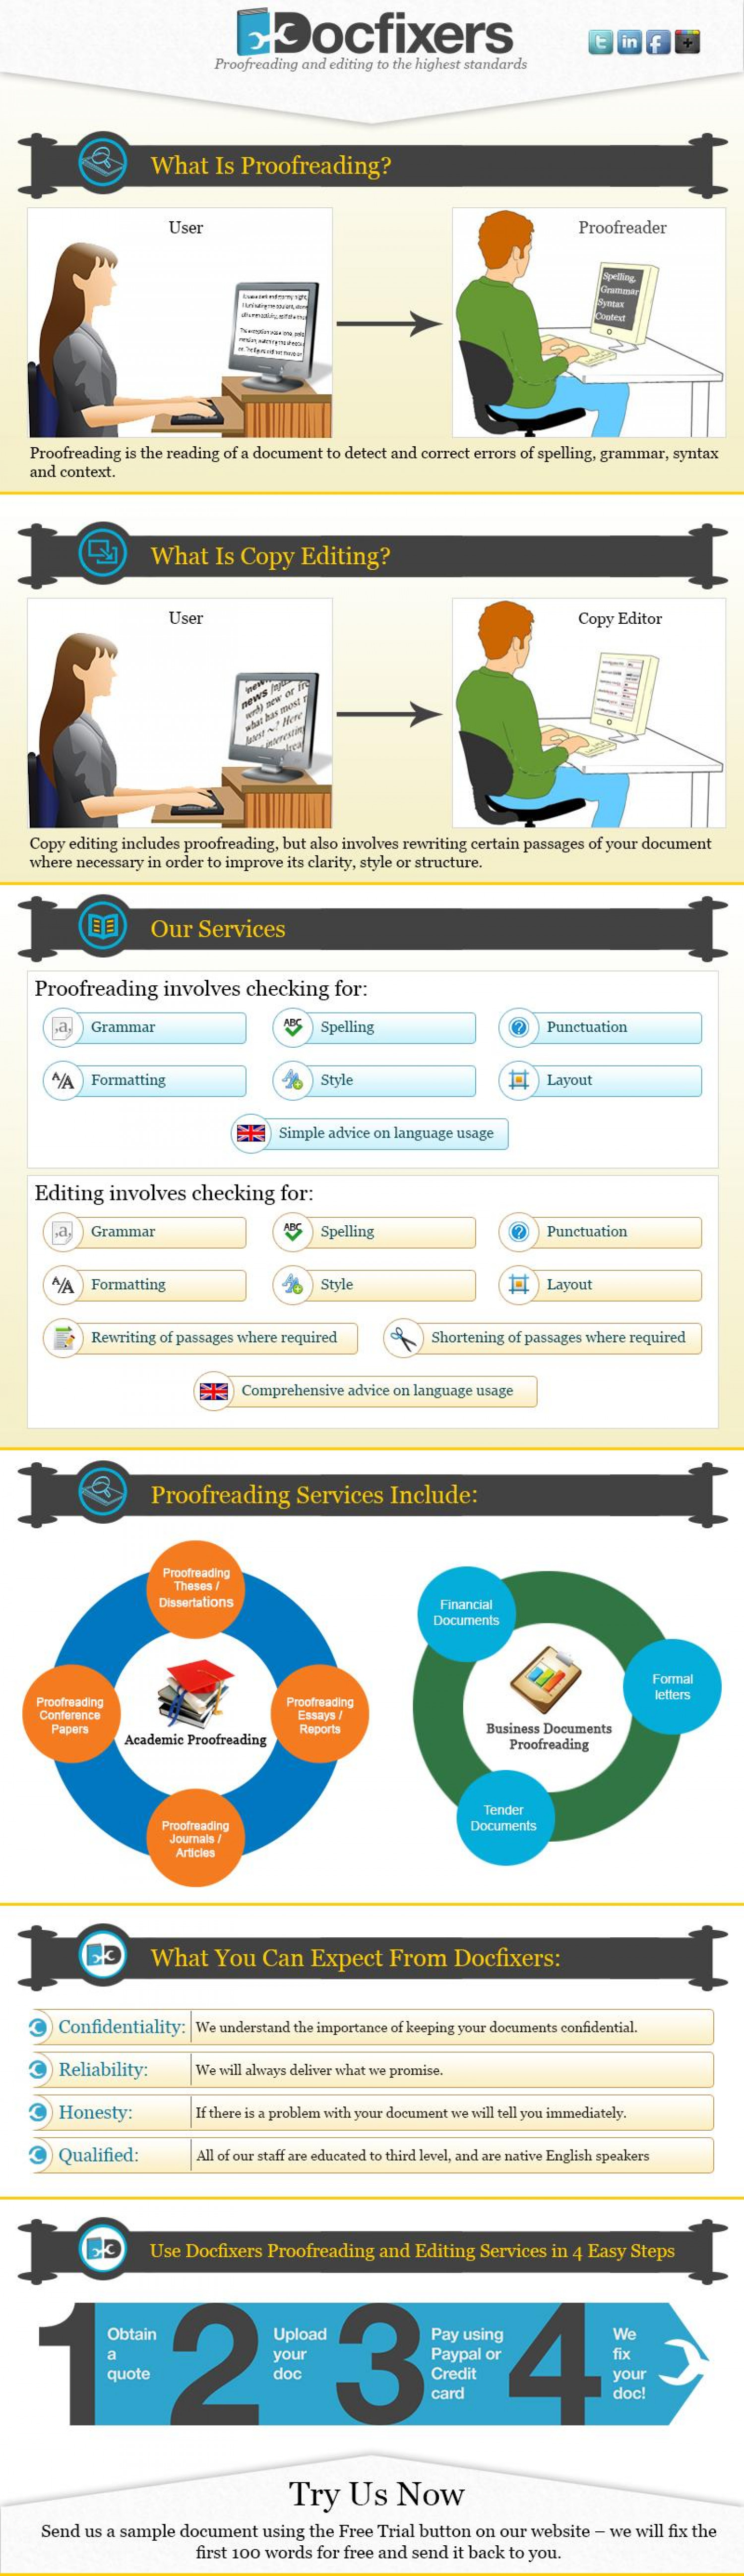 Proofreading | Proofreaders - UK  Infographic